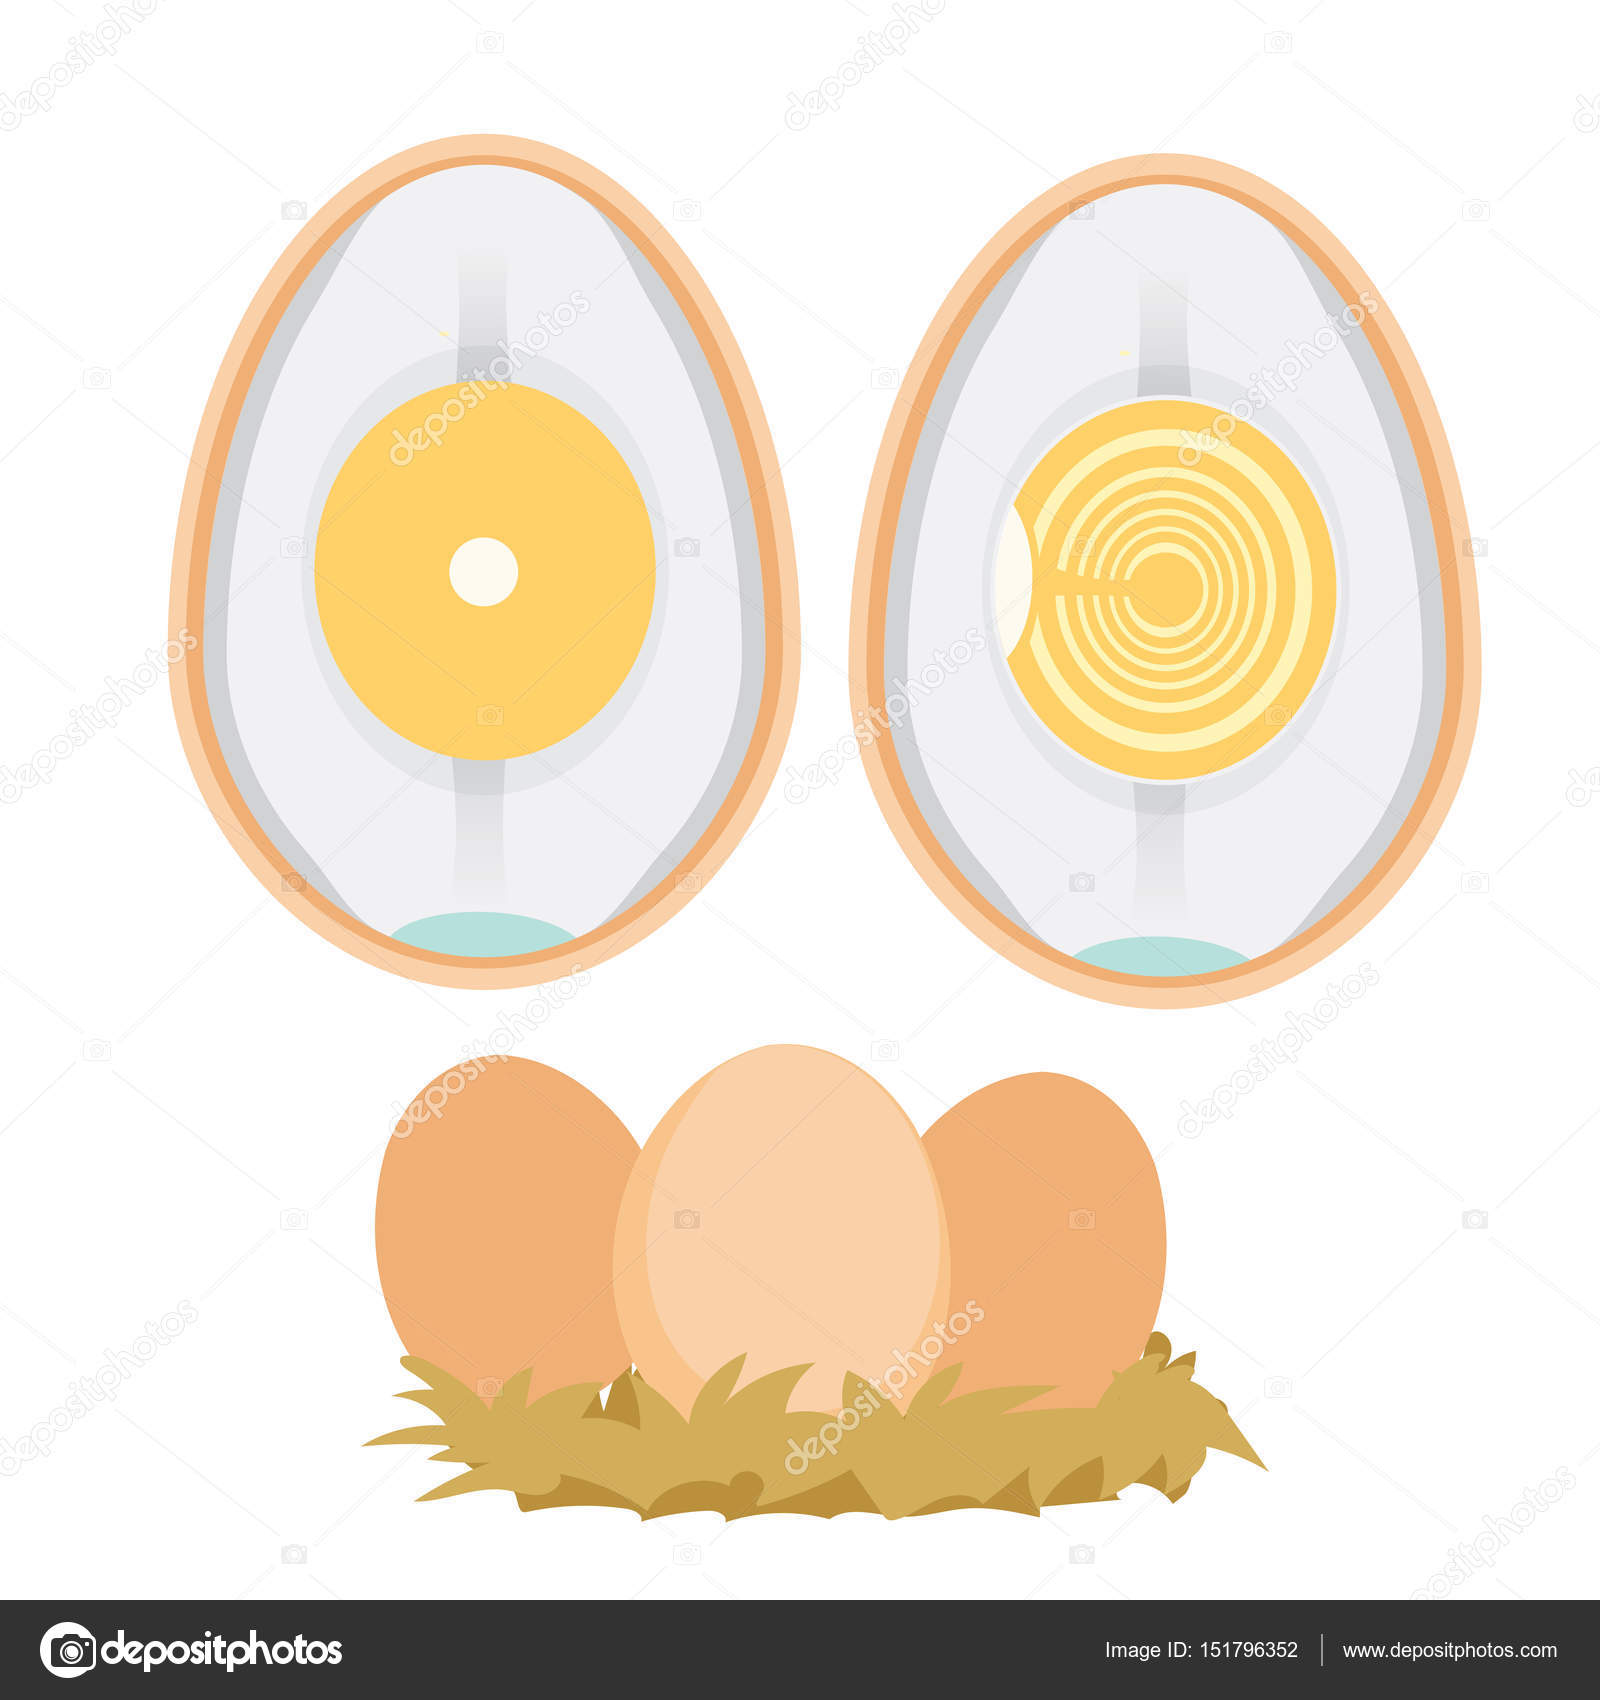 chicken egg life cycle — Stock Vector © pui2motif.gmail.com #151796352